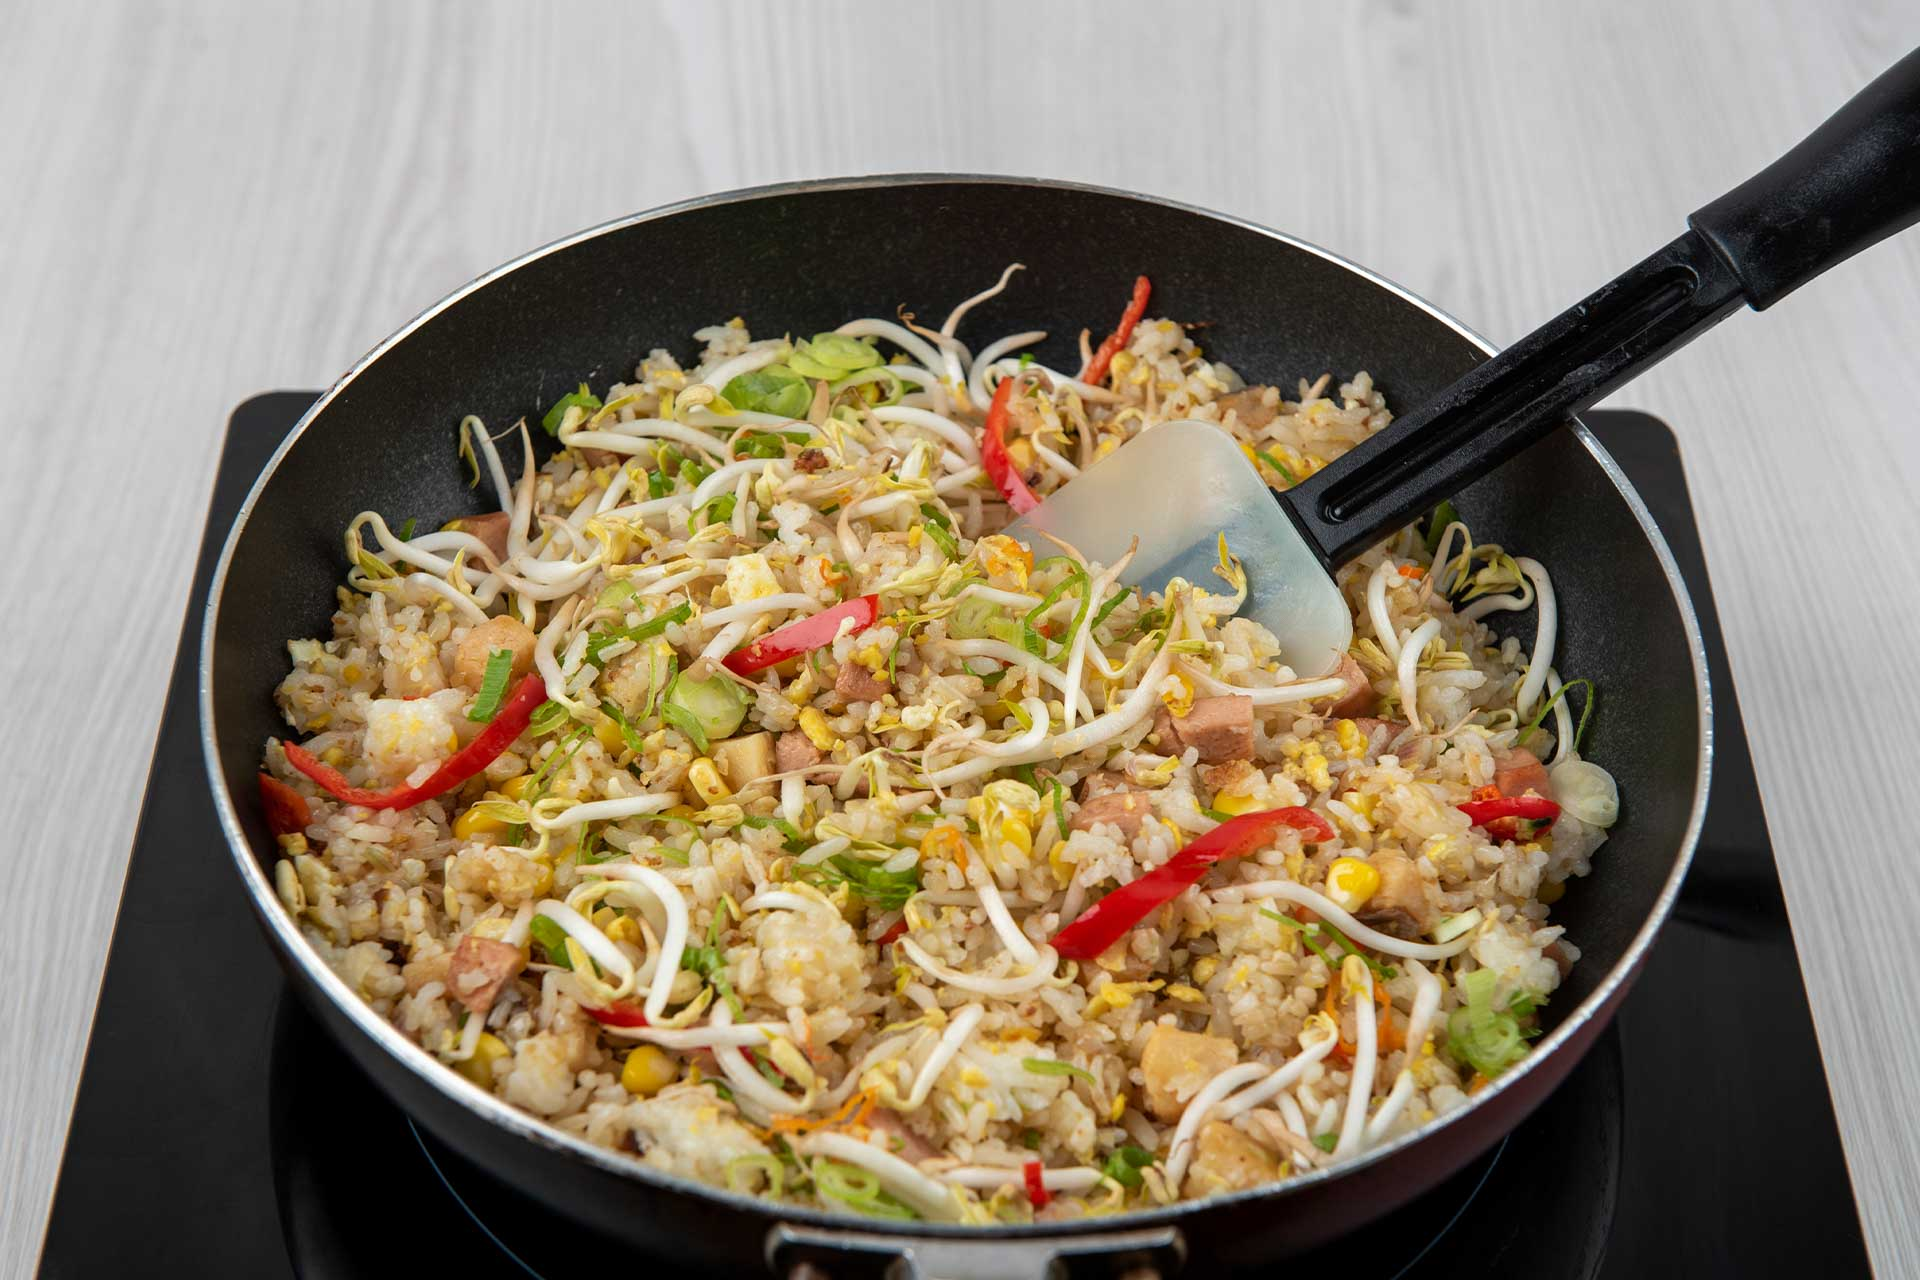 Making salted fish fried rice